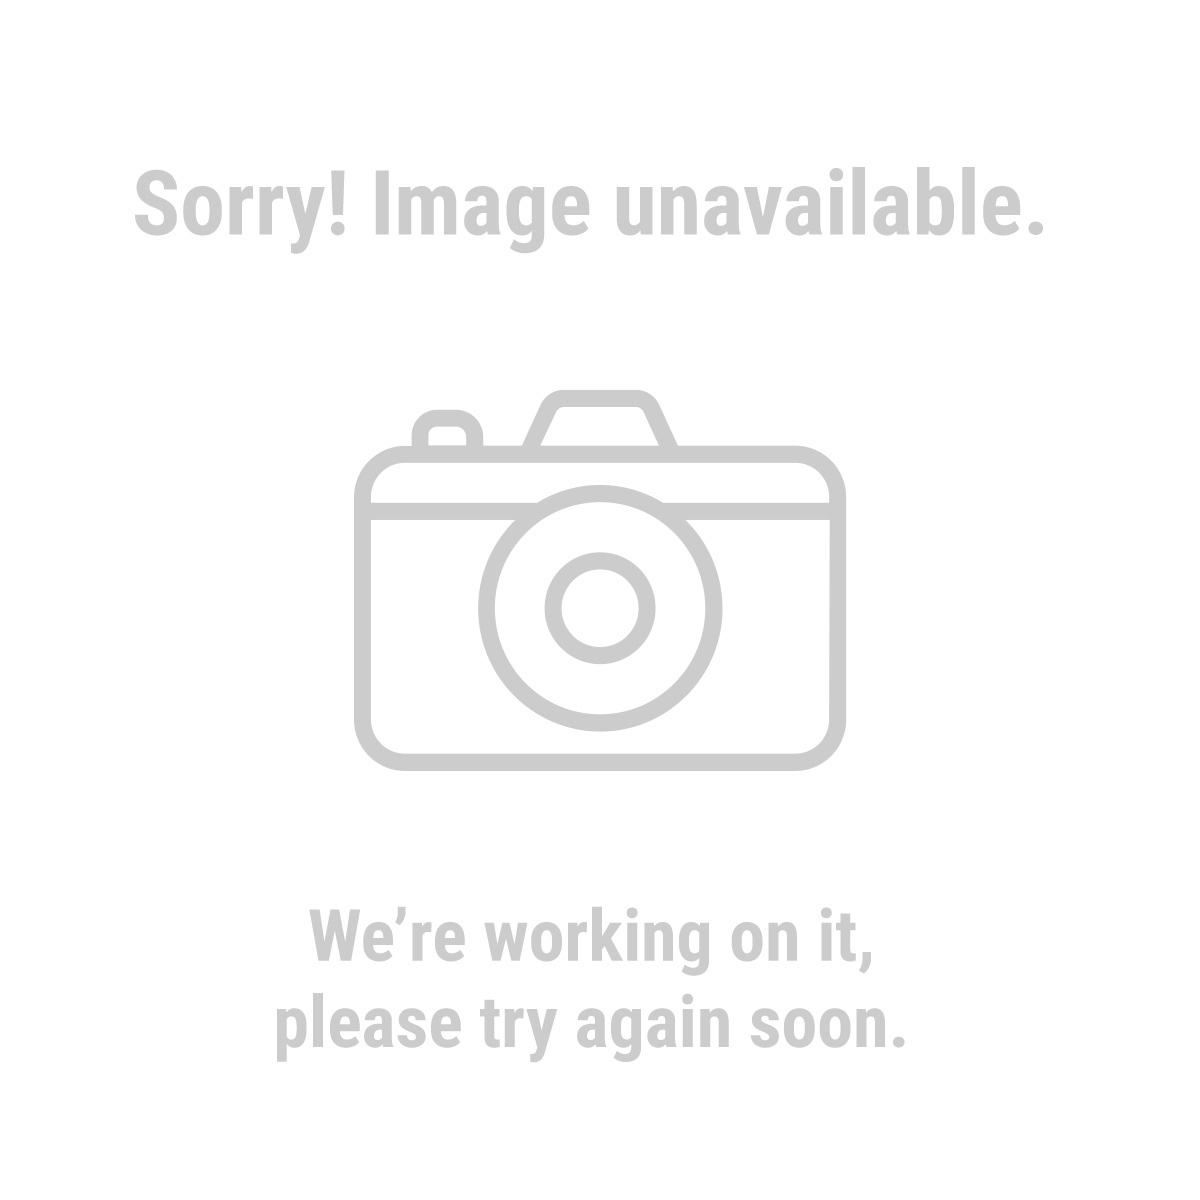 Pittsburgh® 92374 11 Piece Snap Ring Pliers Set